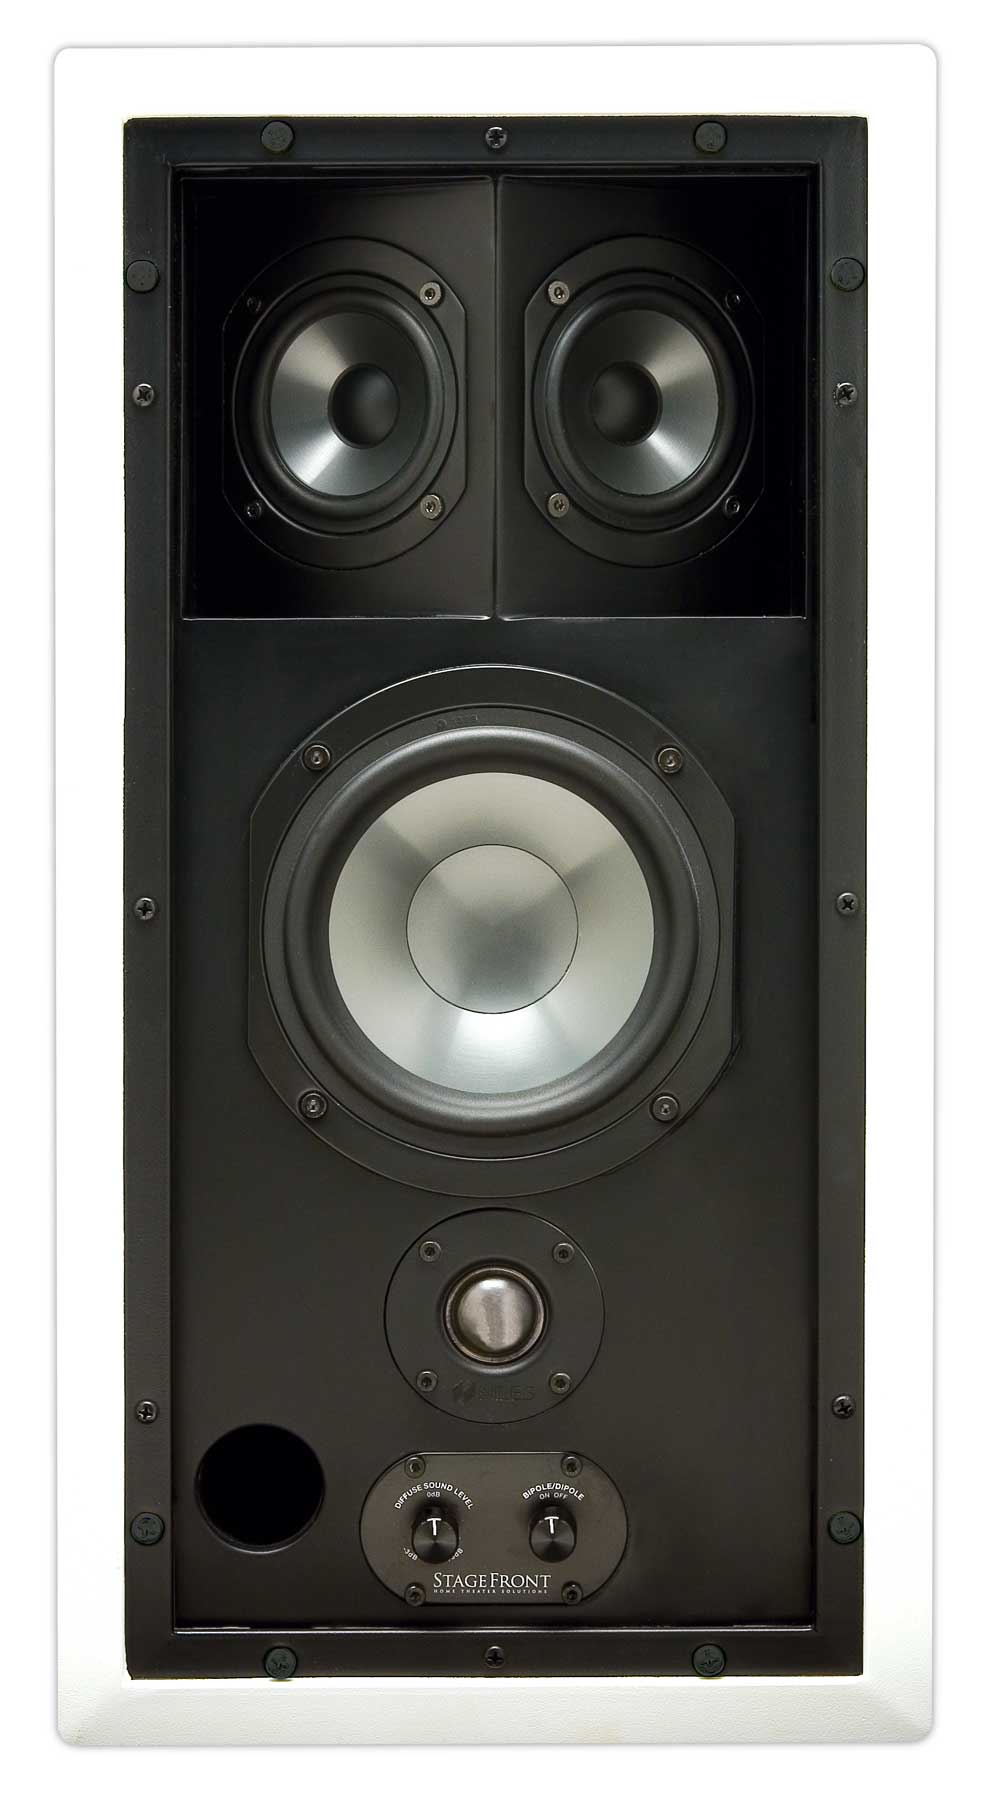 Niles Stagefront In Wall Speakers Clever Home Automation